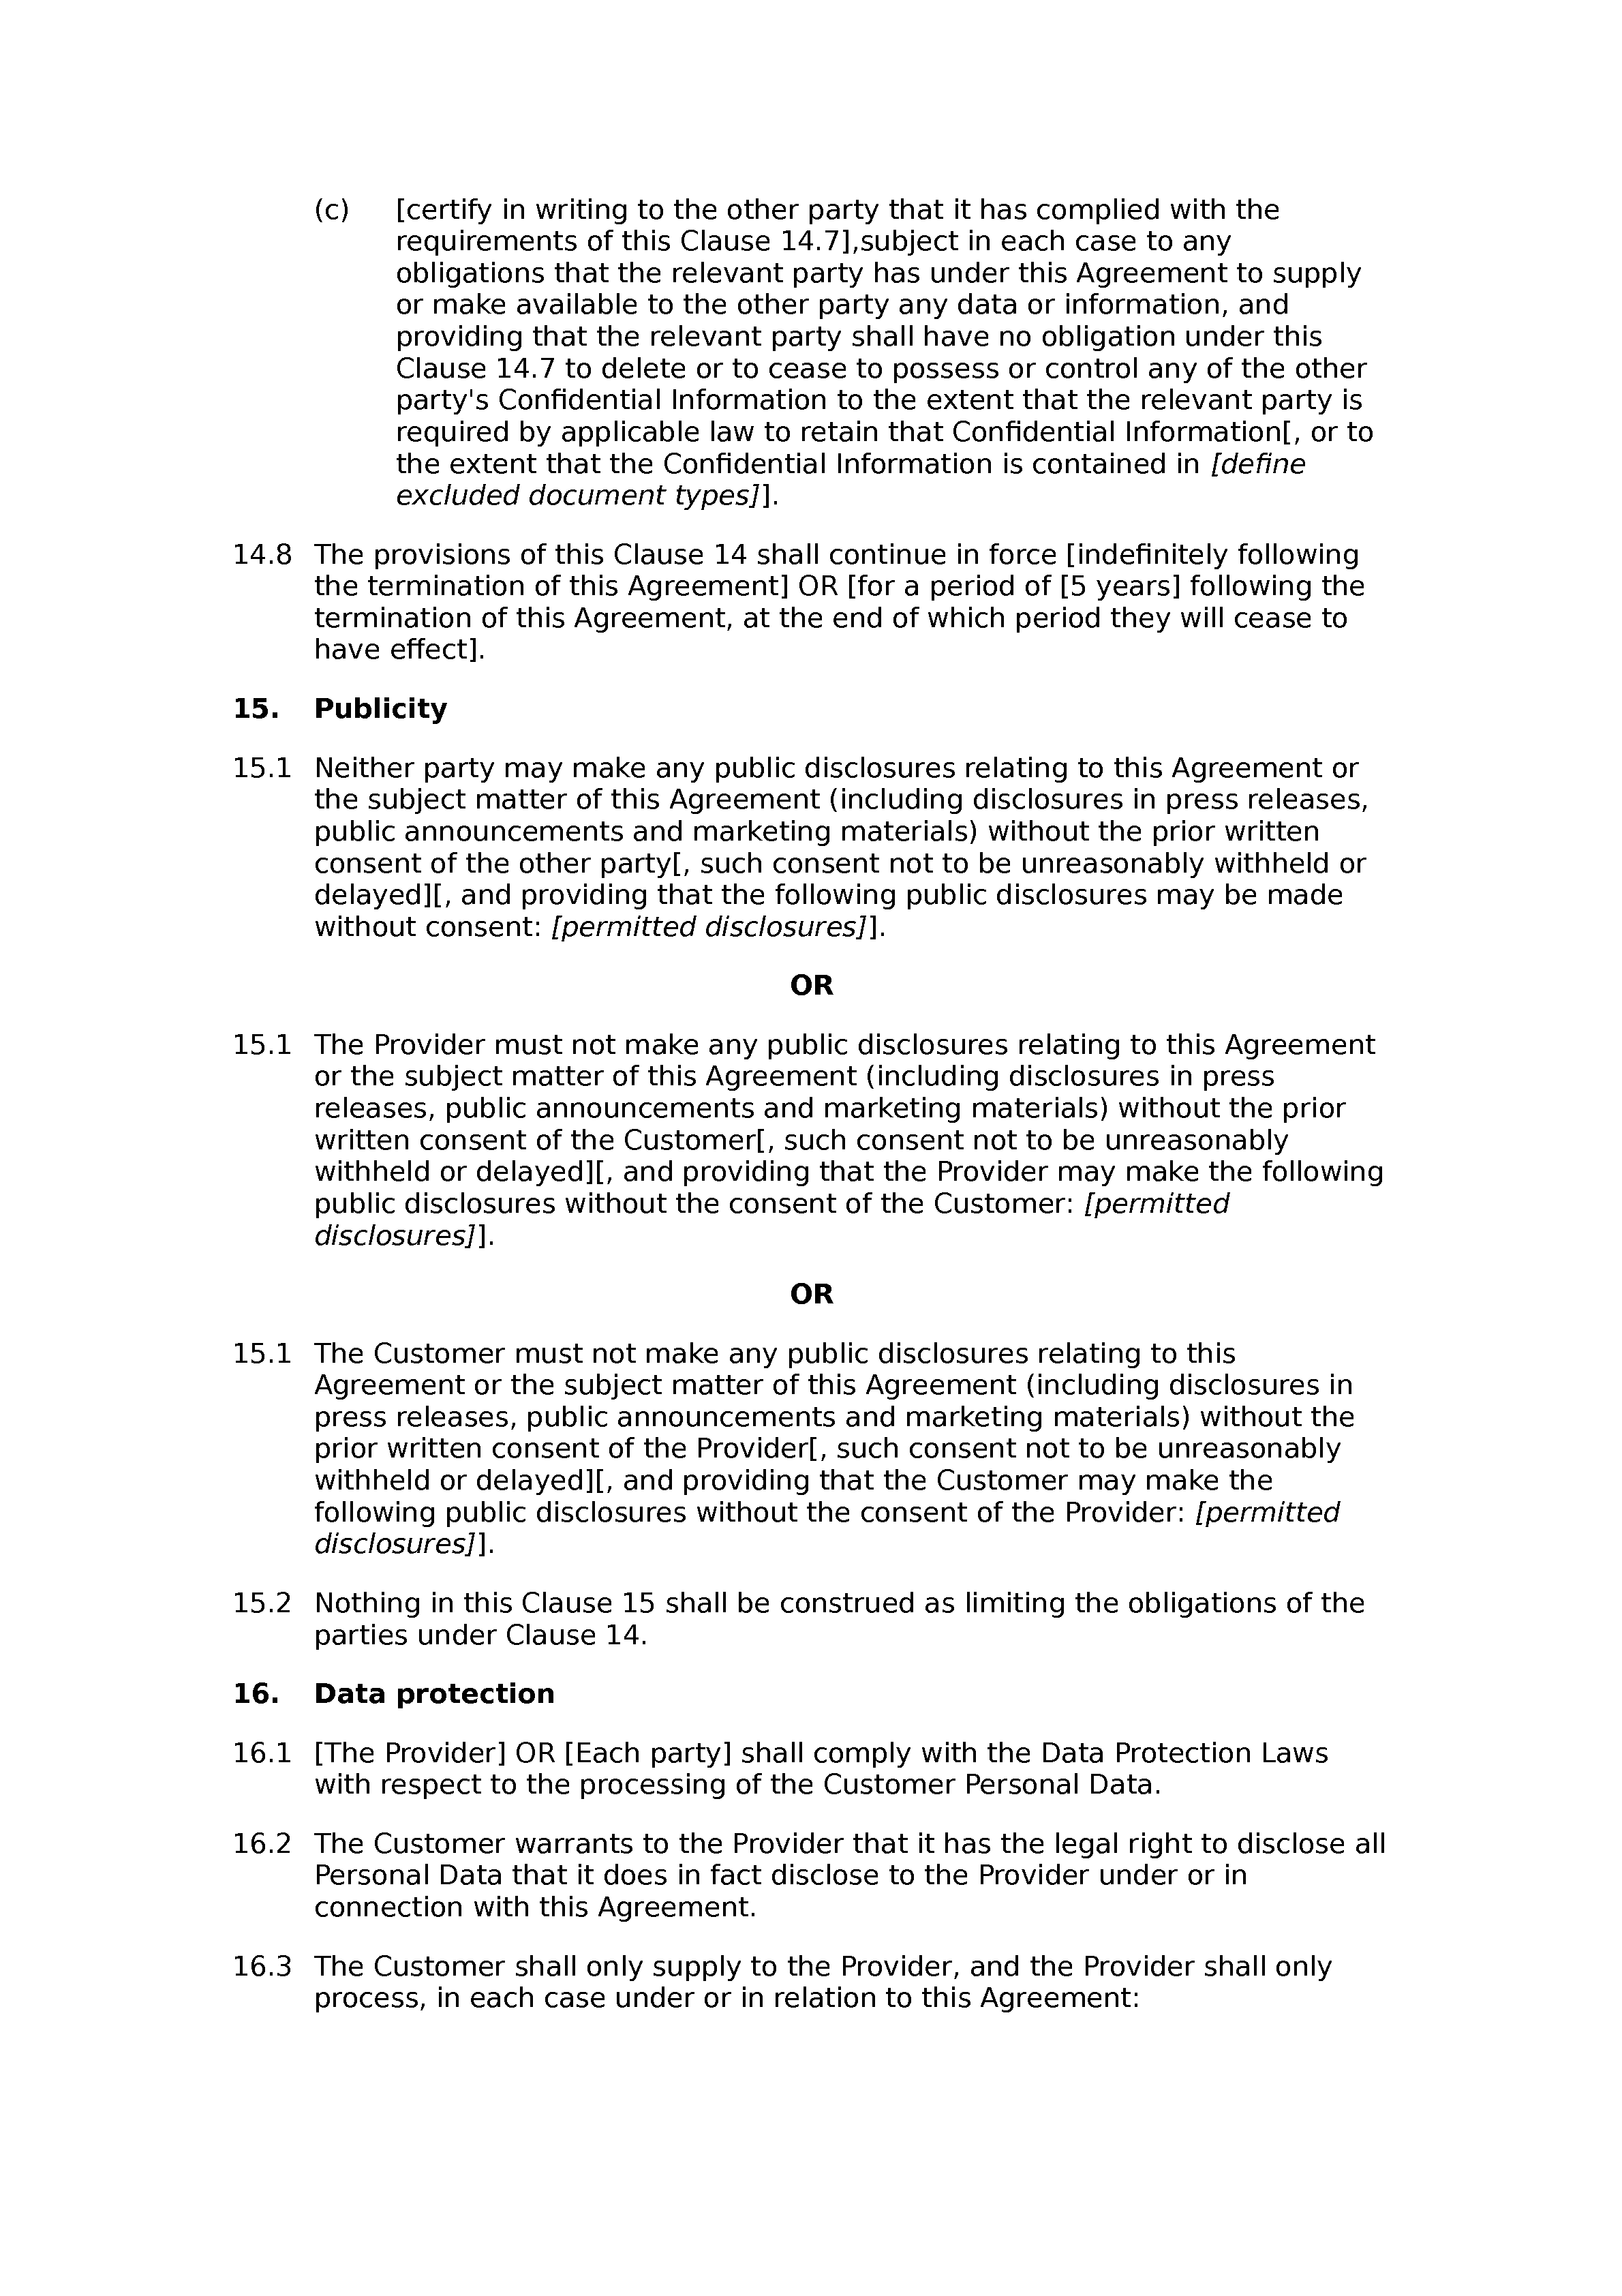 Church Confidentiality Agreement Templates Download Merchandise 985 009  Church Confidentiality Agreement Templates Downloadhtml